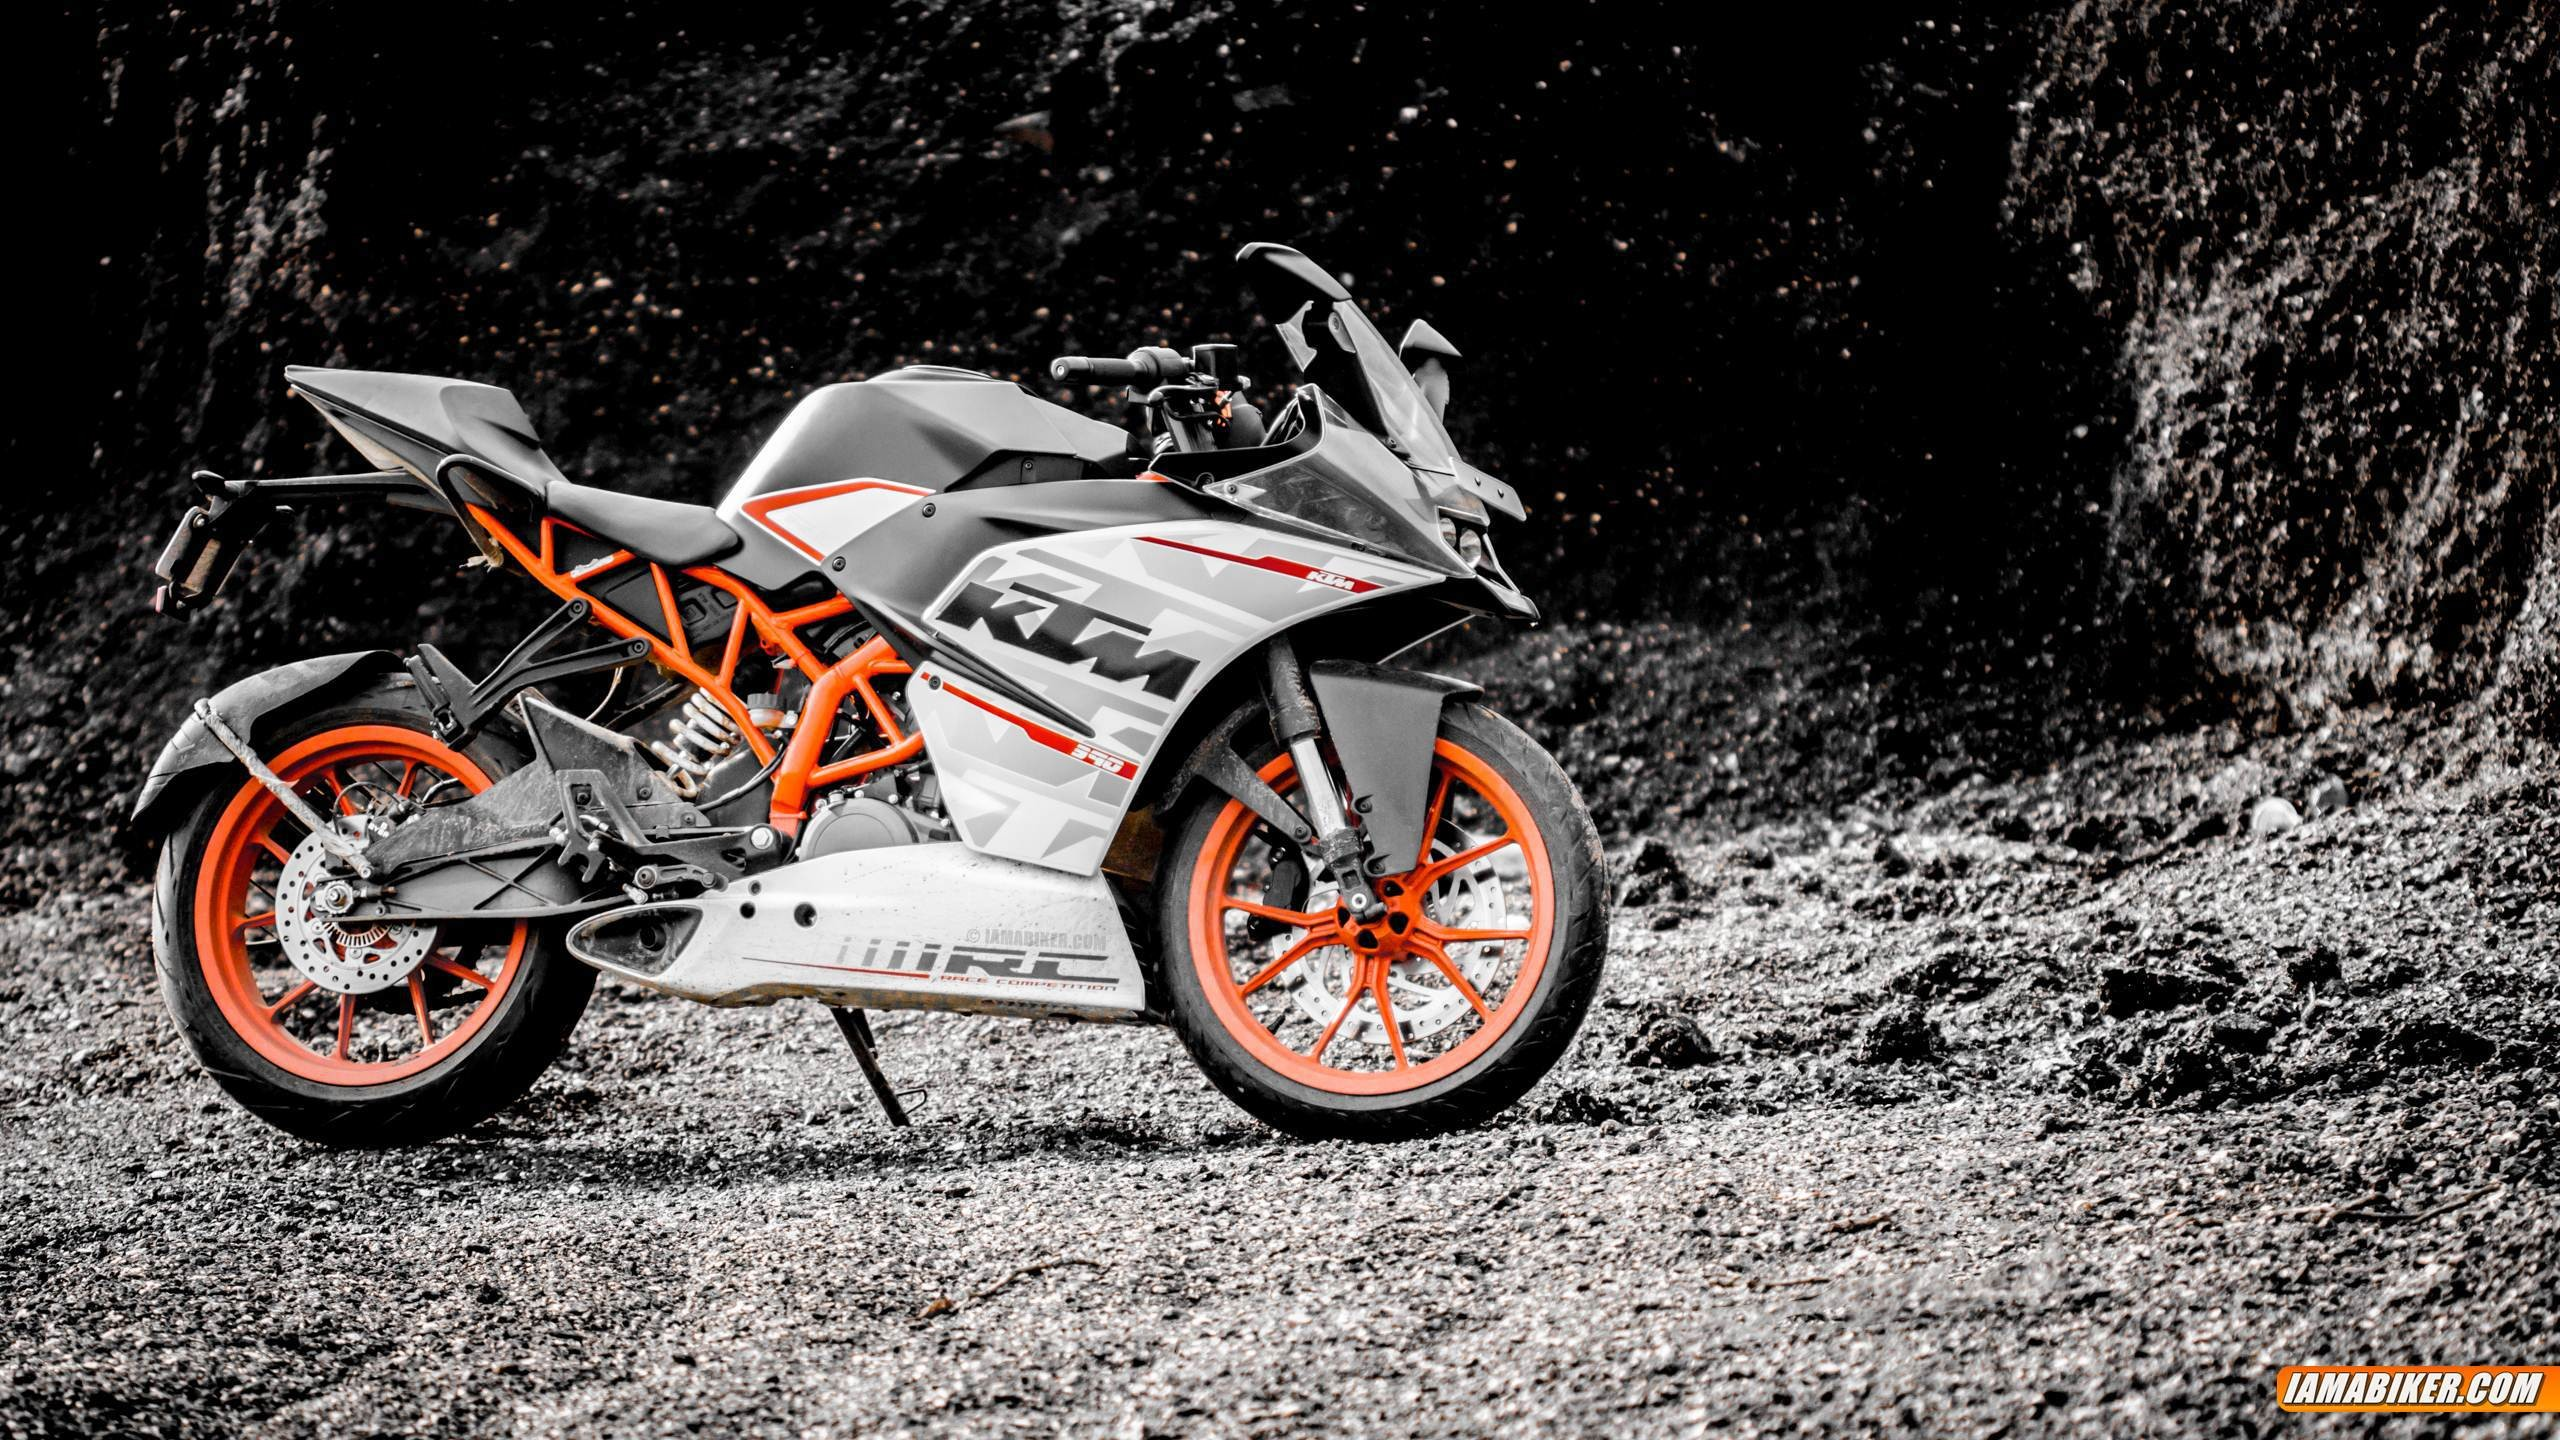 Ktm Rc 390 Wallpapers ①